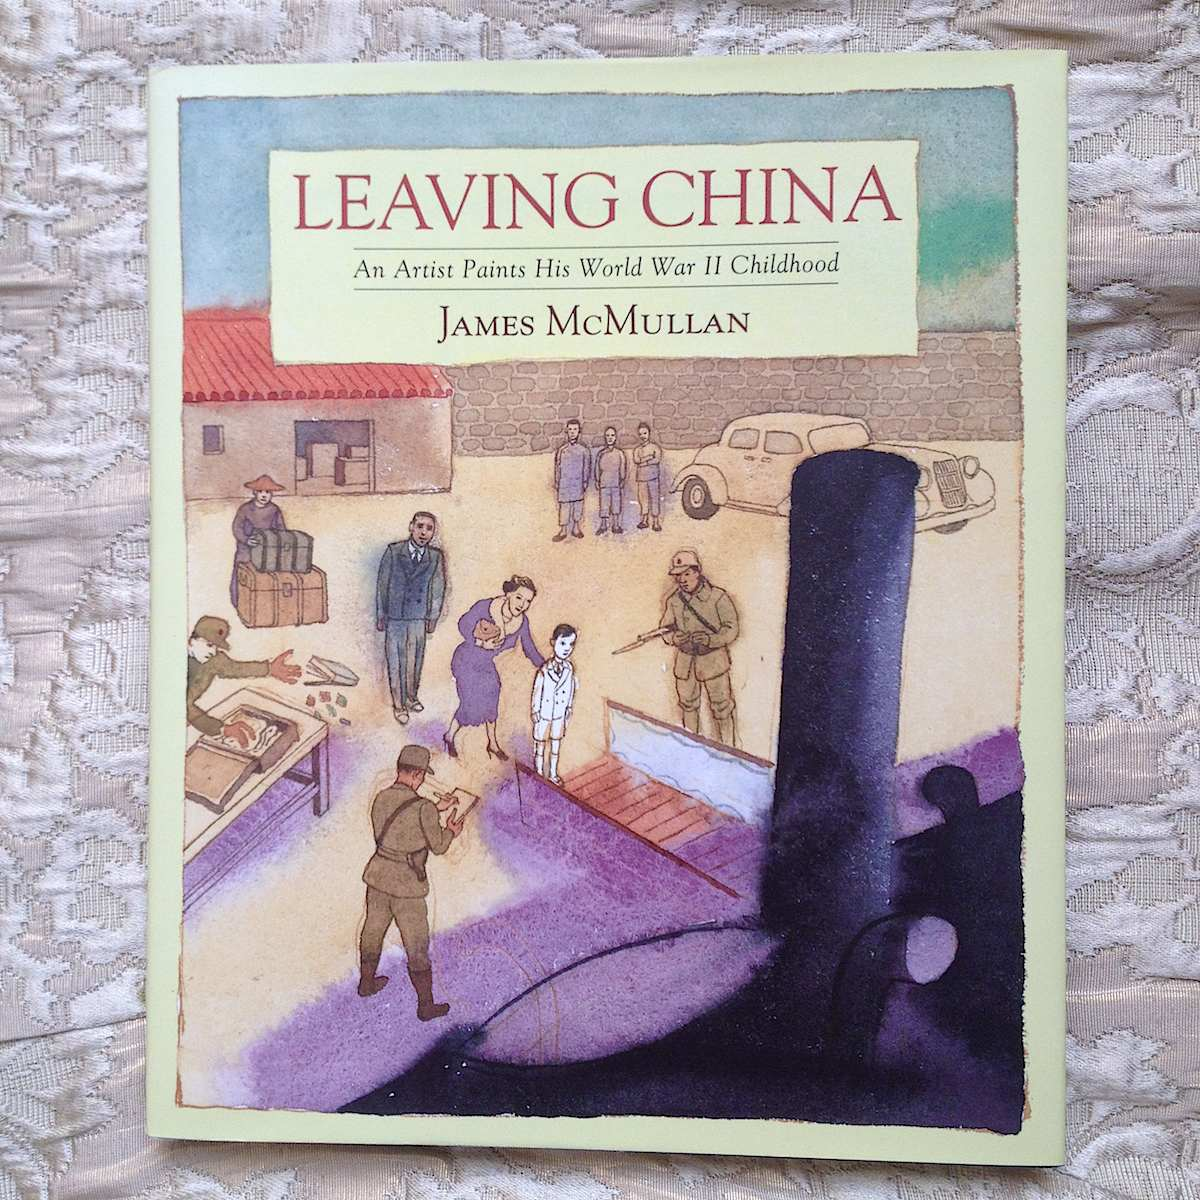 Leaving China – a painted memoir about growing up during WW2